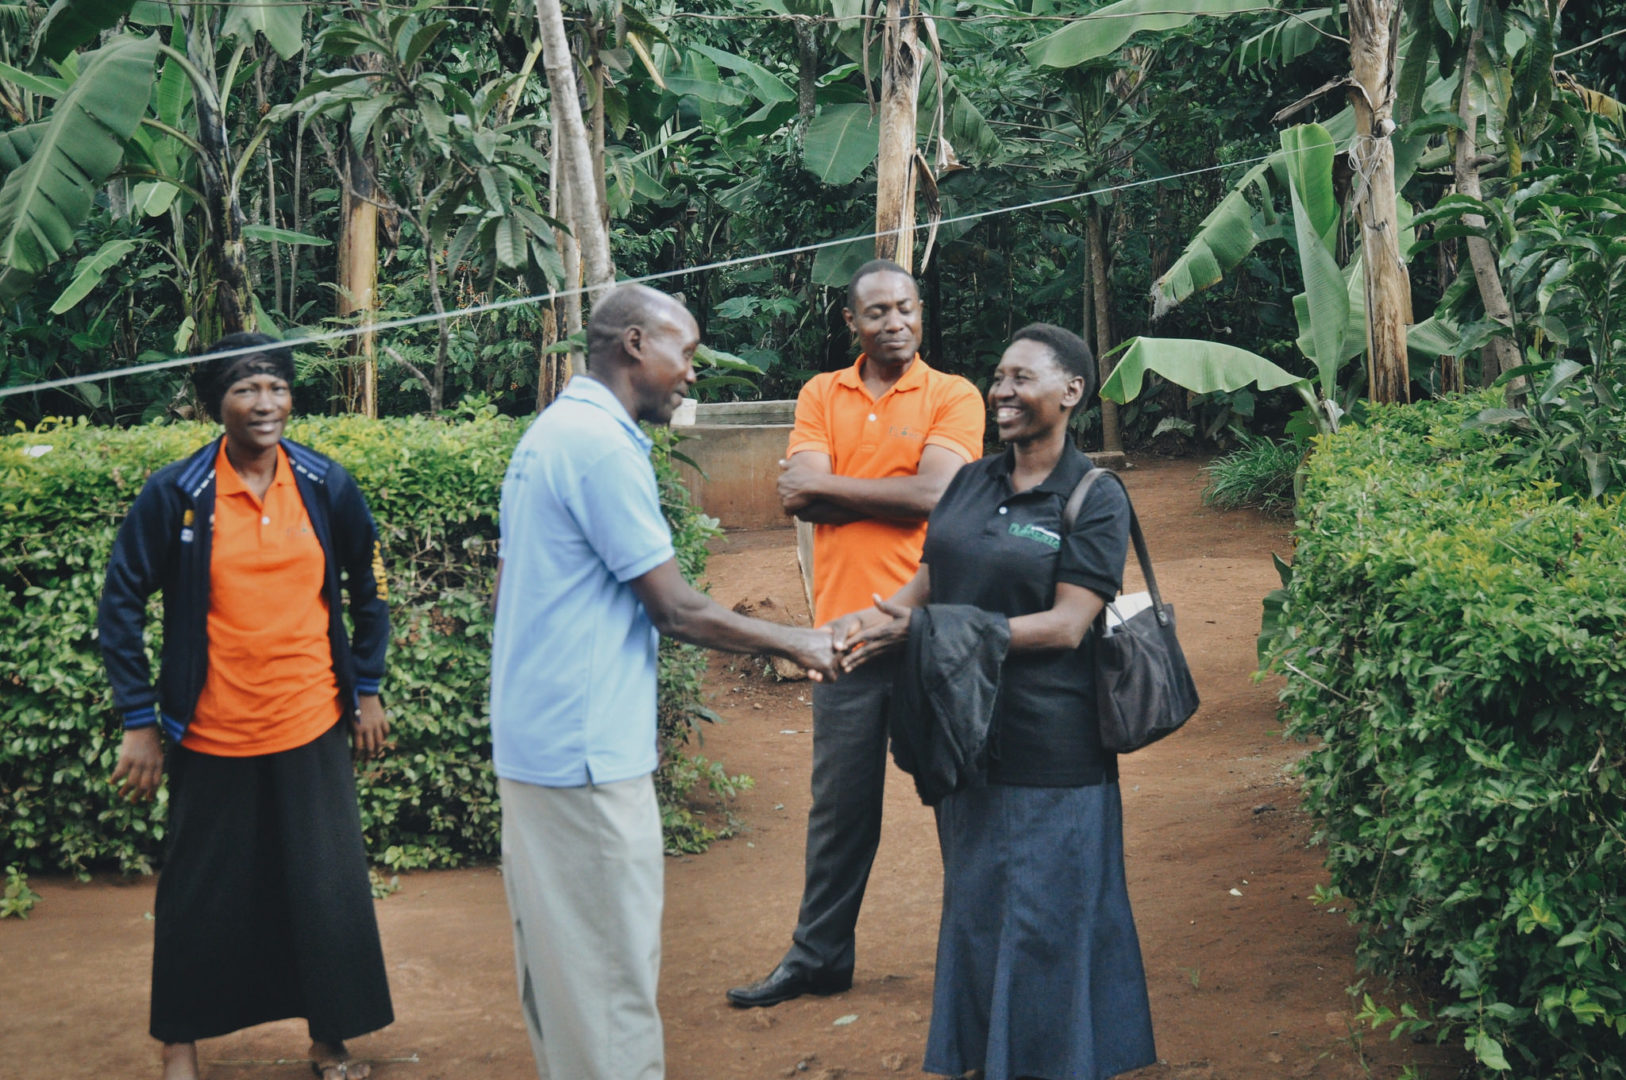 National staff members from Tanzania visit a program site in the country's rural areas.